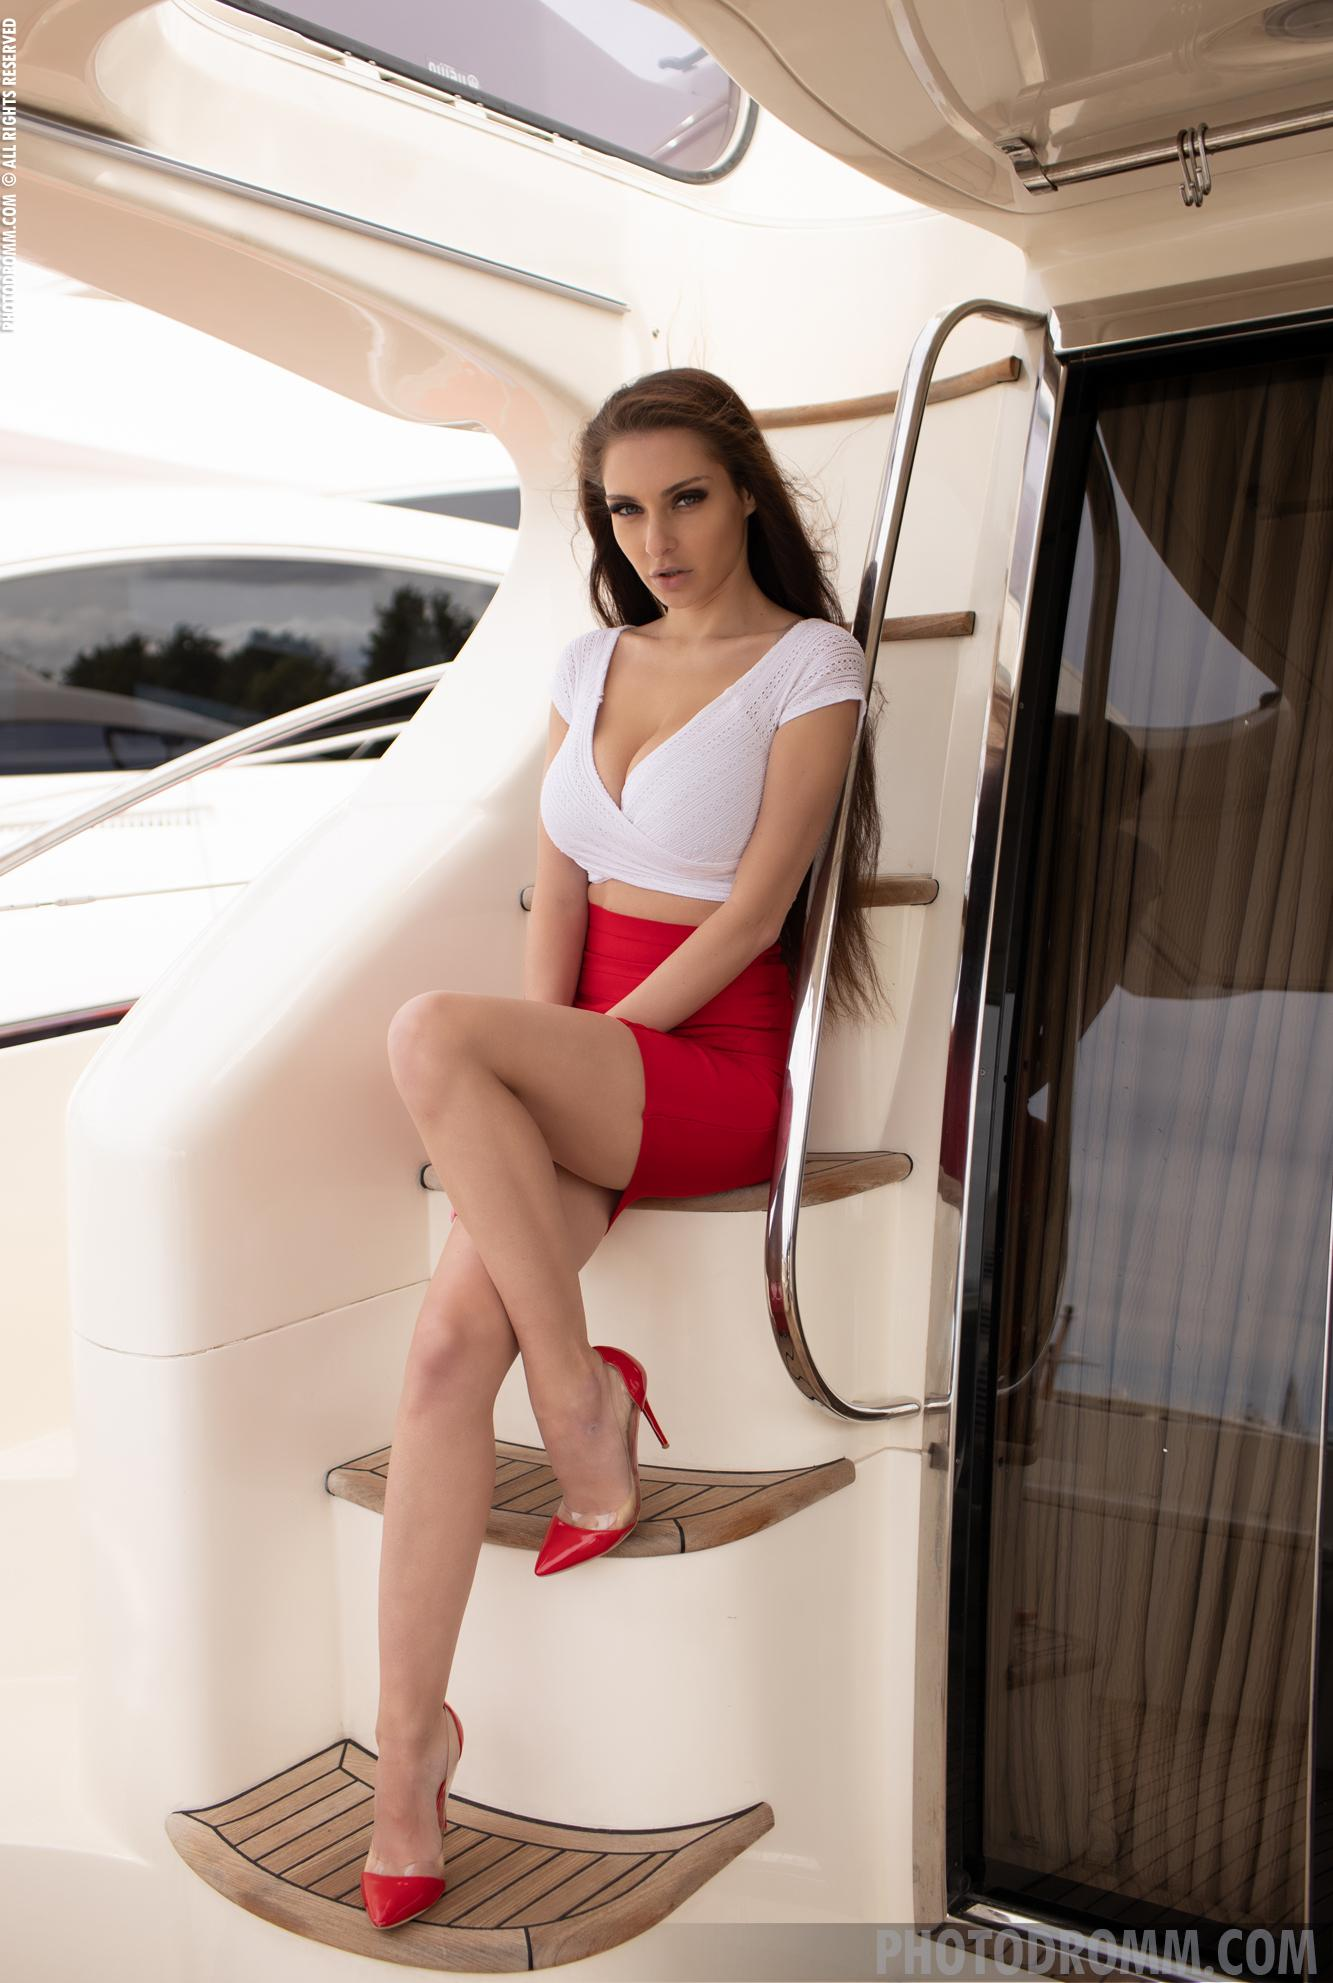 join me on my own private yacht picture 2